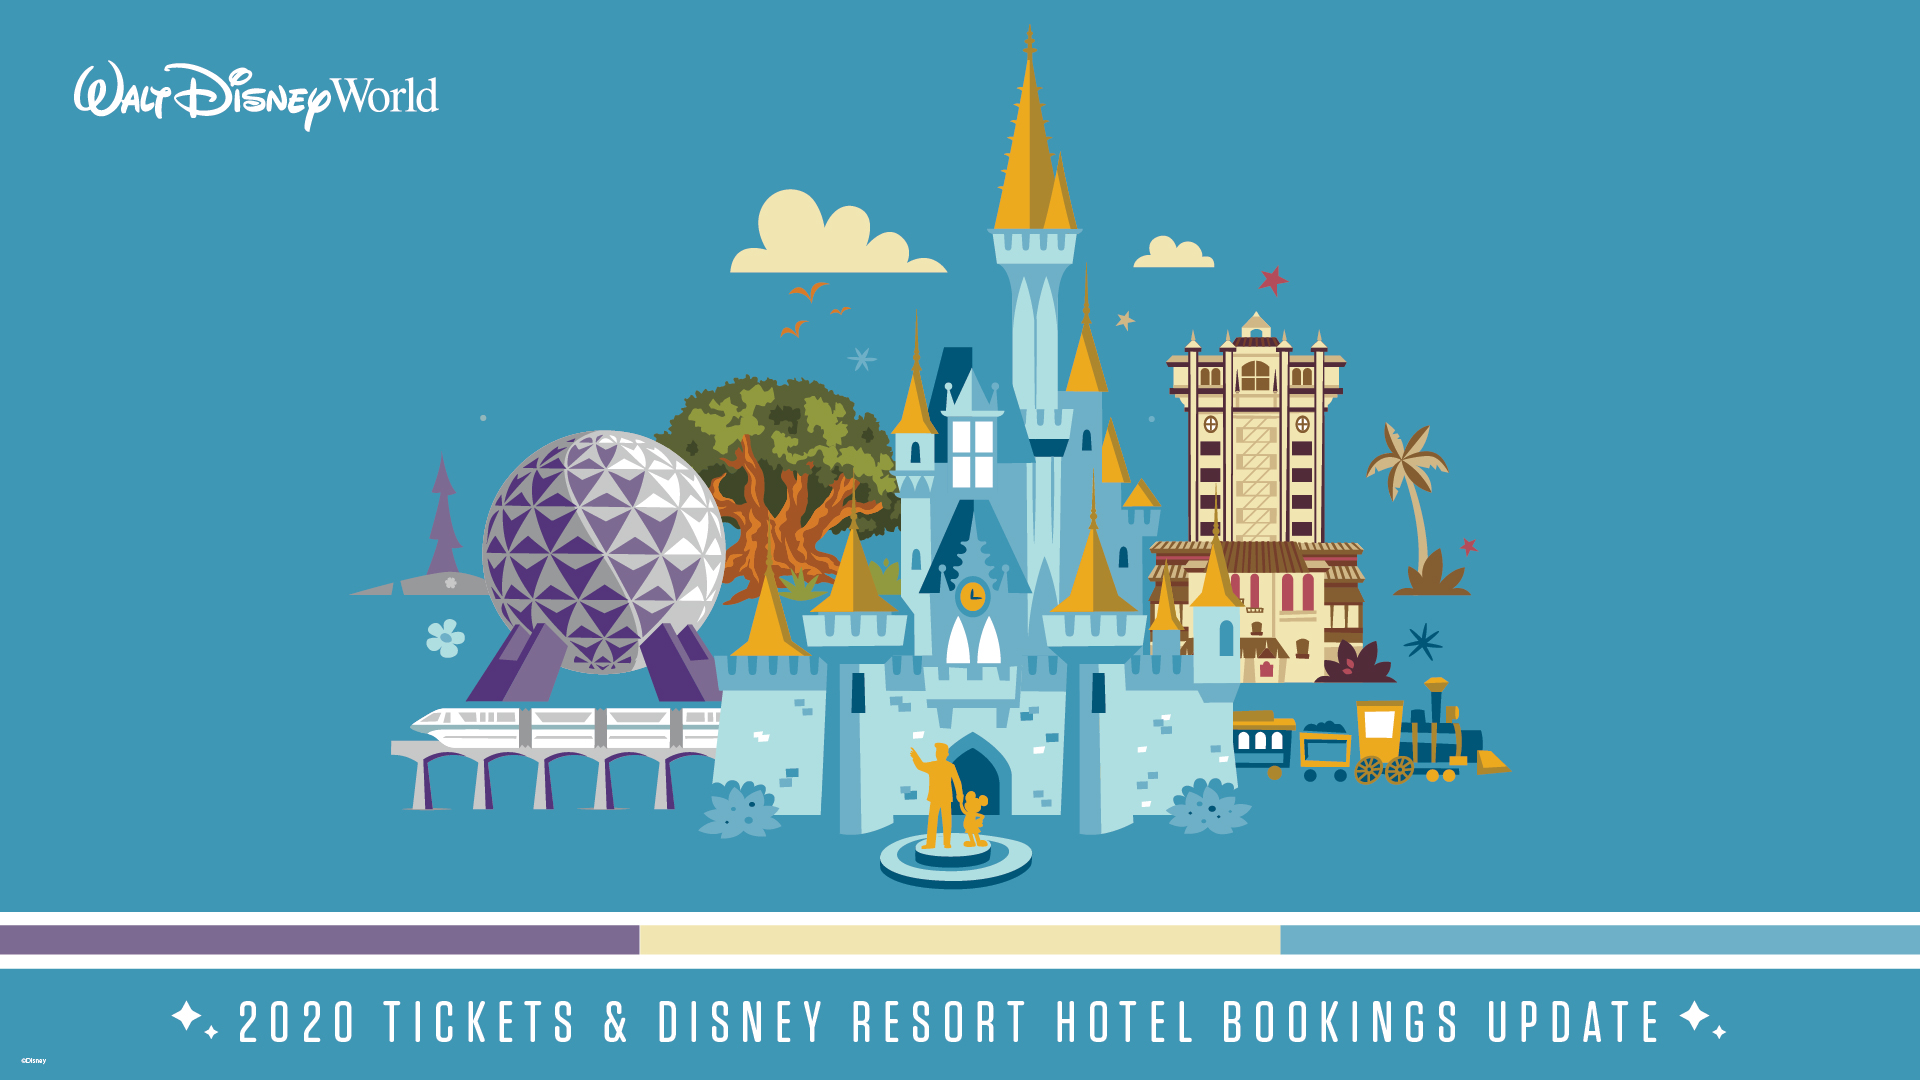 We are resuming Disney Resort hotel bookings, packages, and ticket sales for 2020 today.